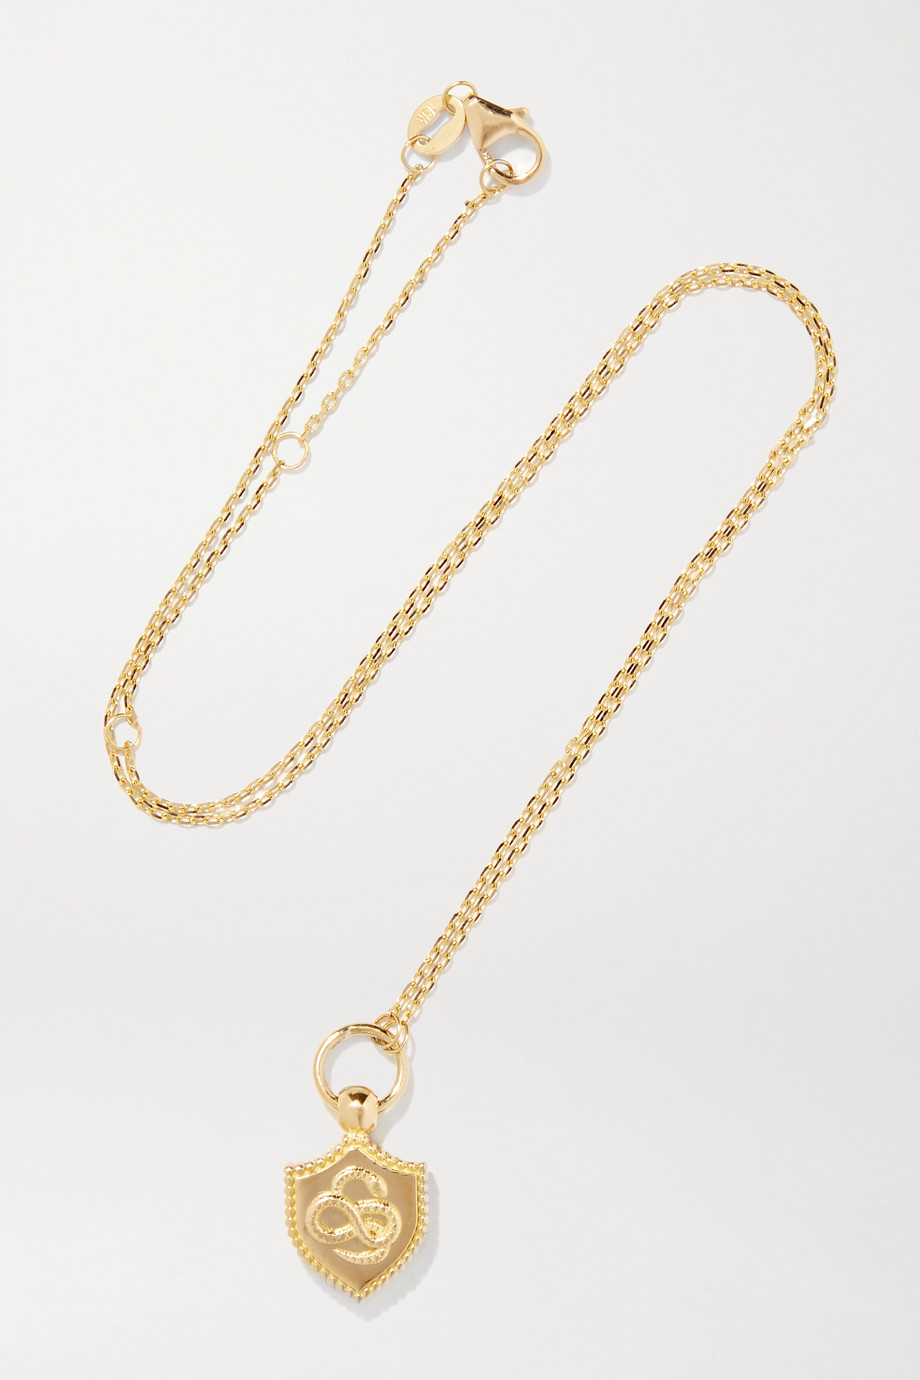 Foundrae Wholeness 18-karat gold necklace